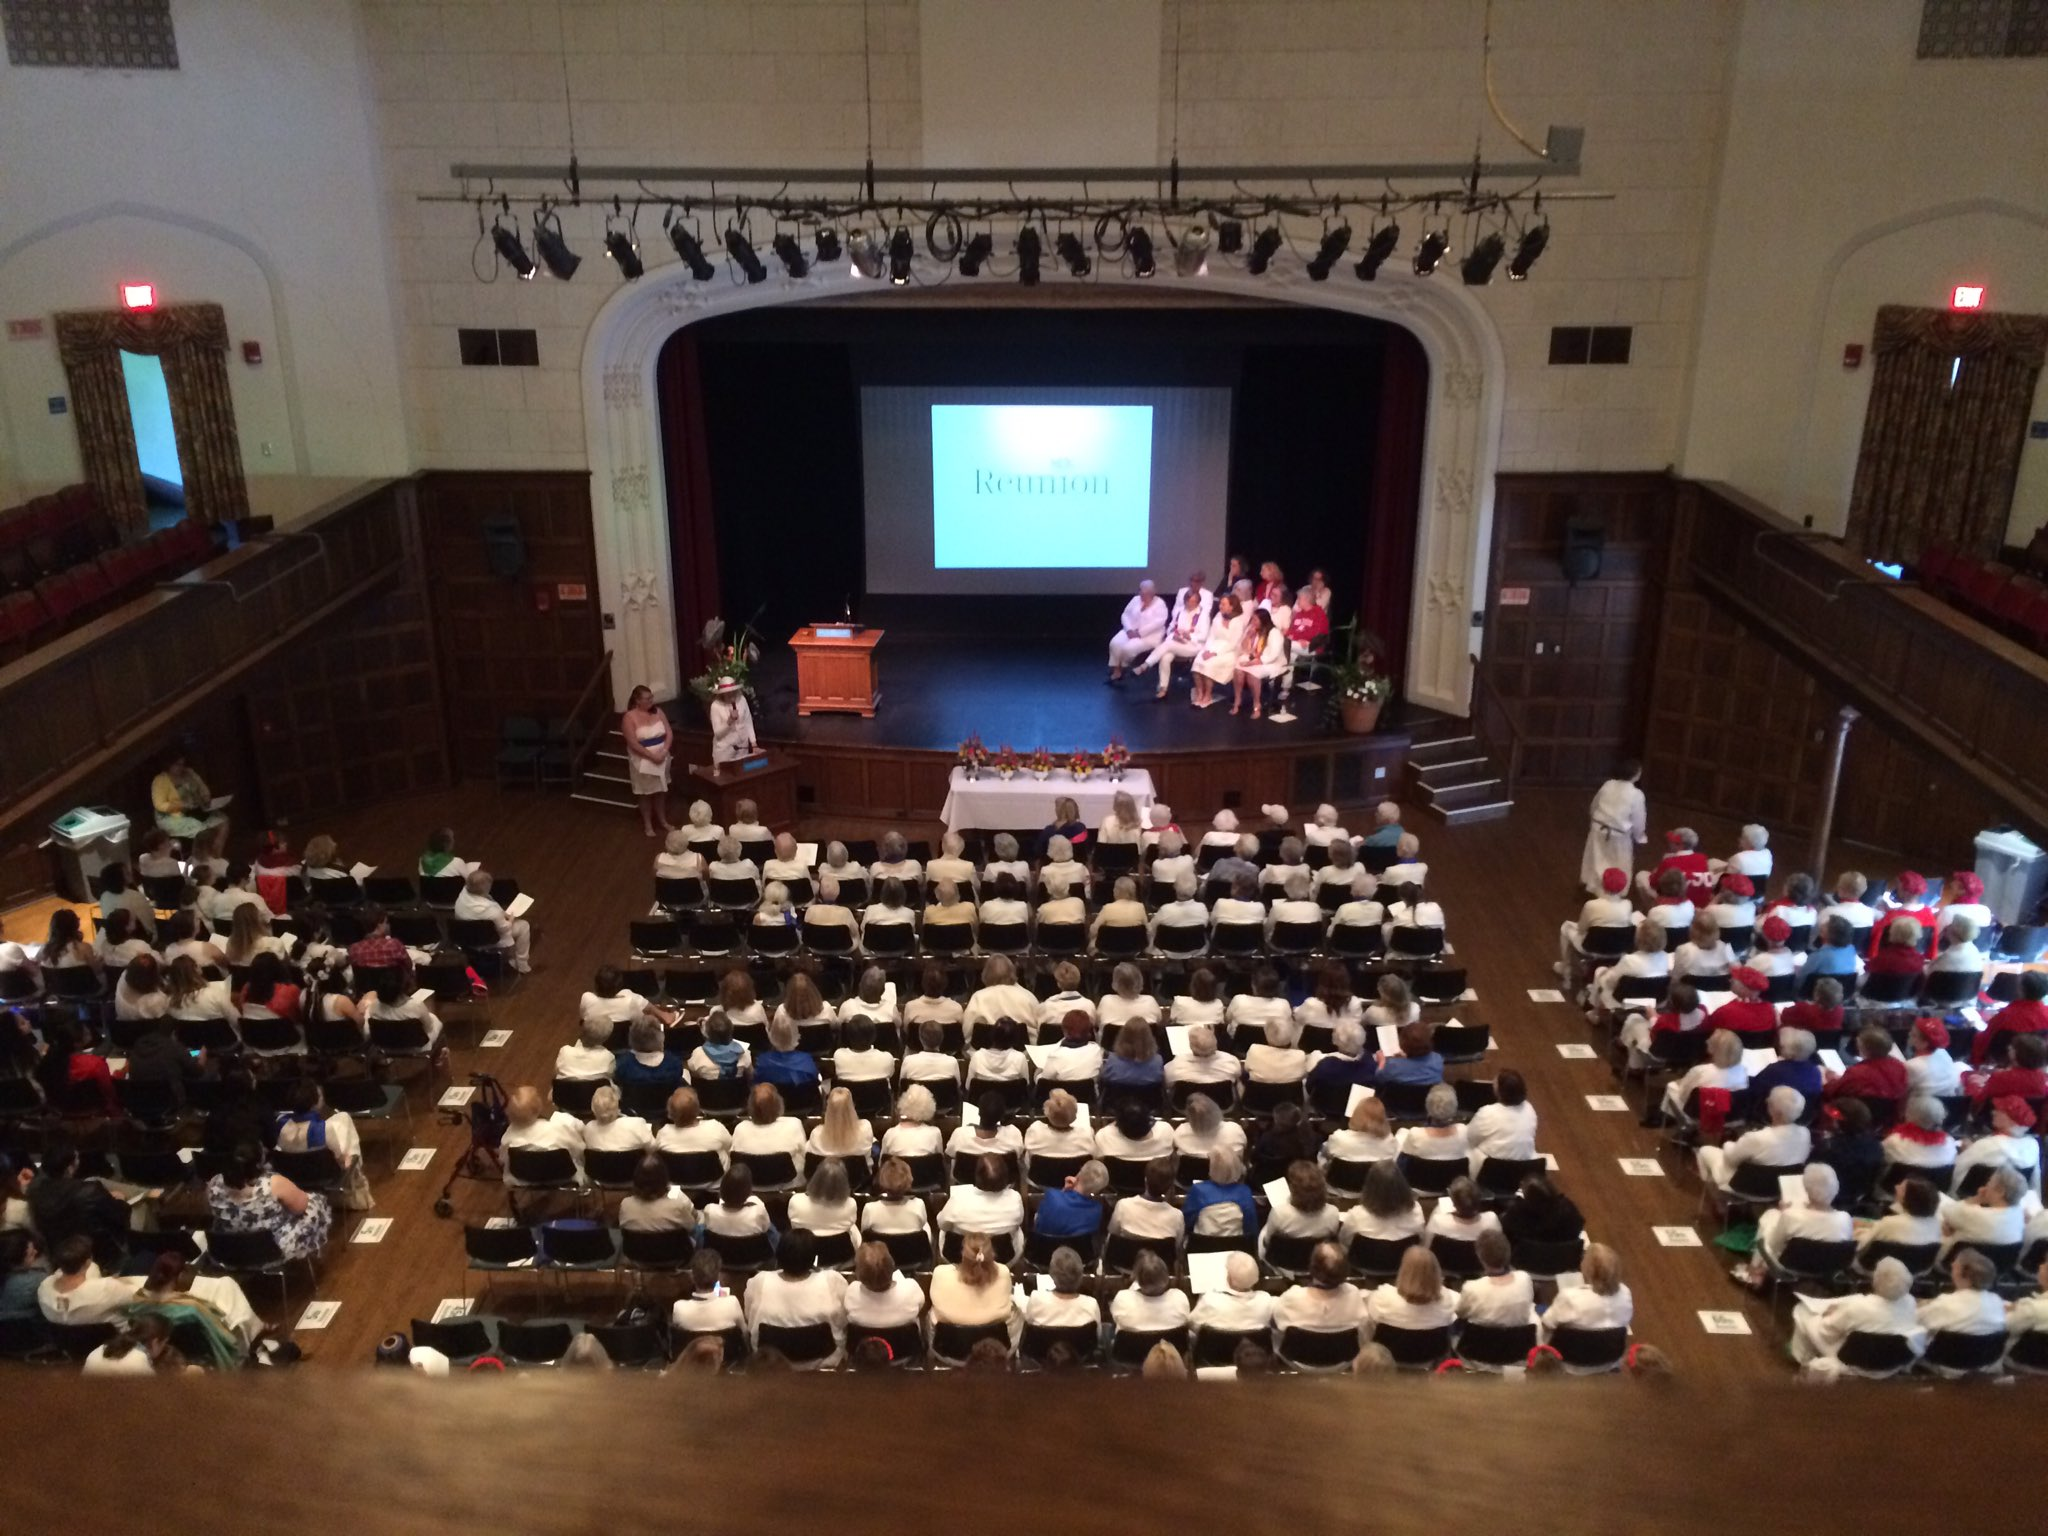 Class histories are being read at the Alumnae meeting in Chapin Auditorium. #MHCReunion https://t.co/ZRYrraMvyB